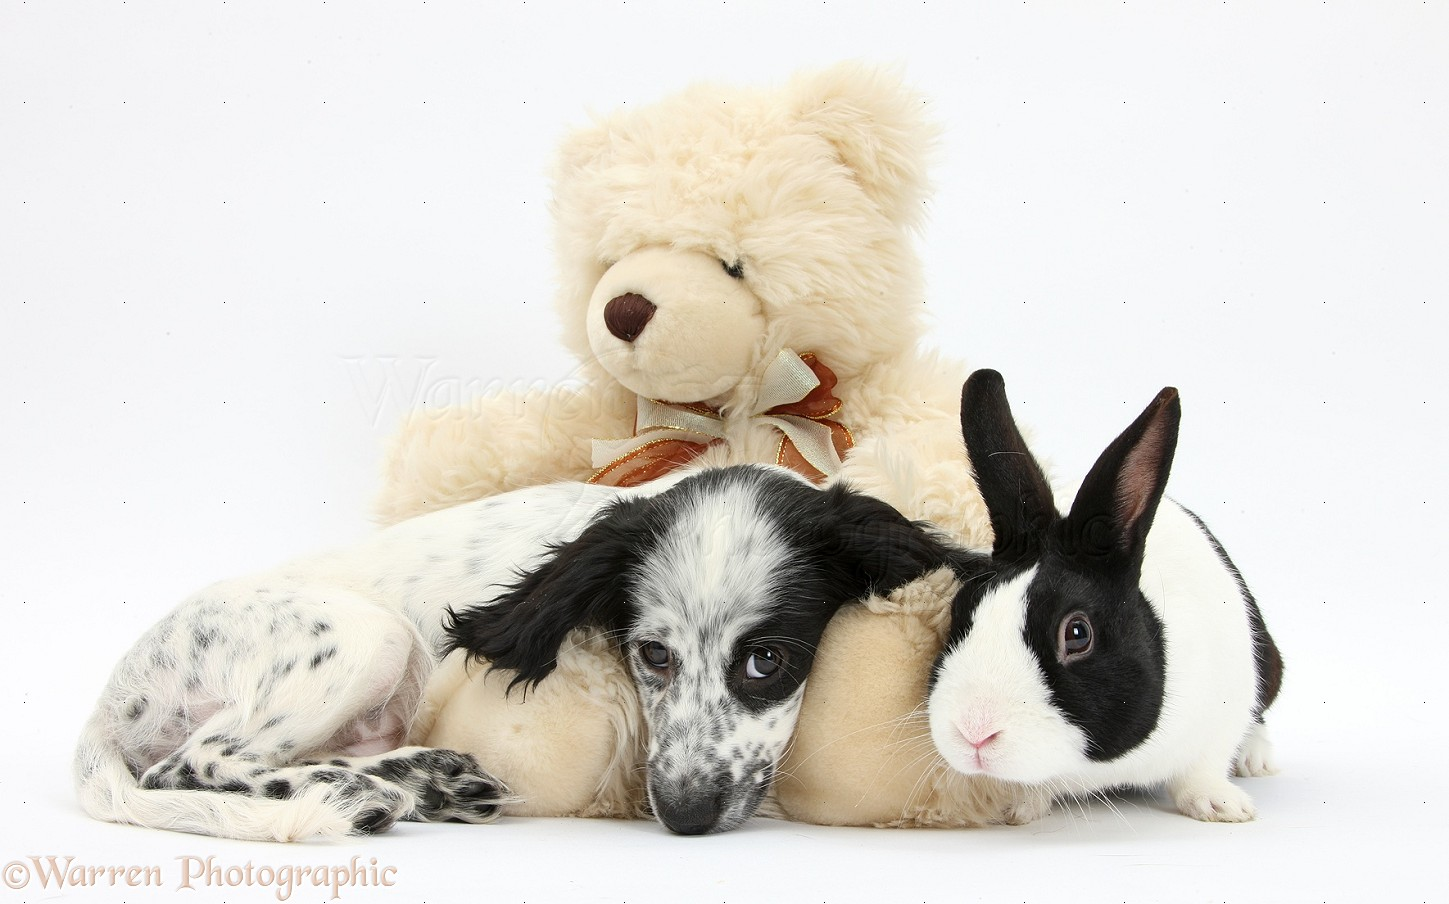 pets black and white puppy teddy bear and rabbit photo wp36266